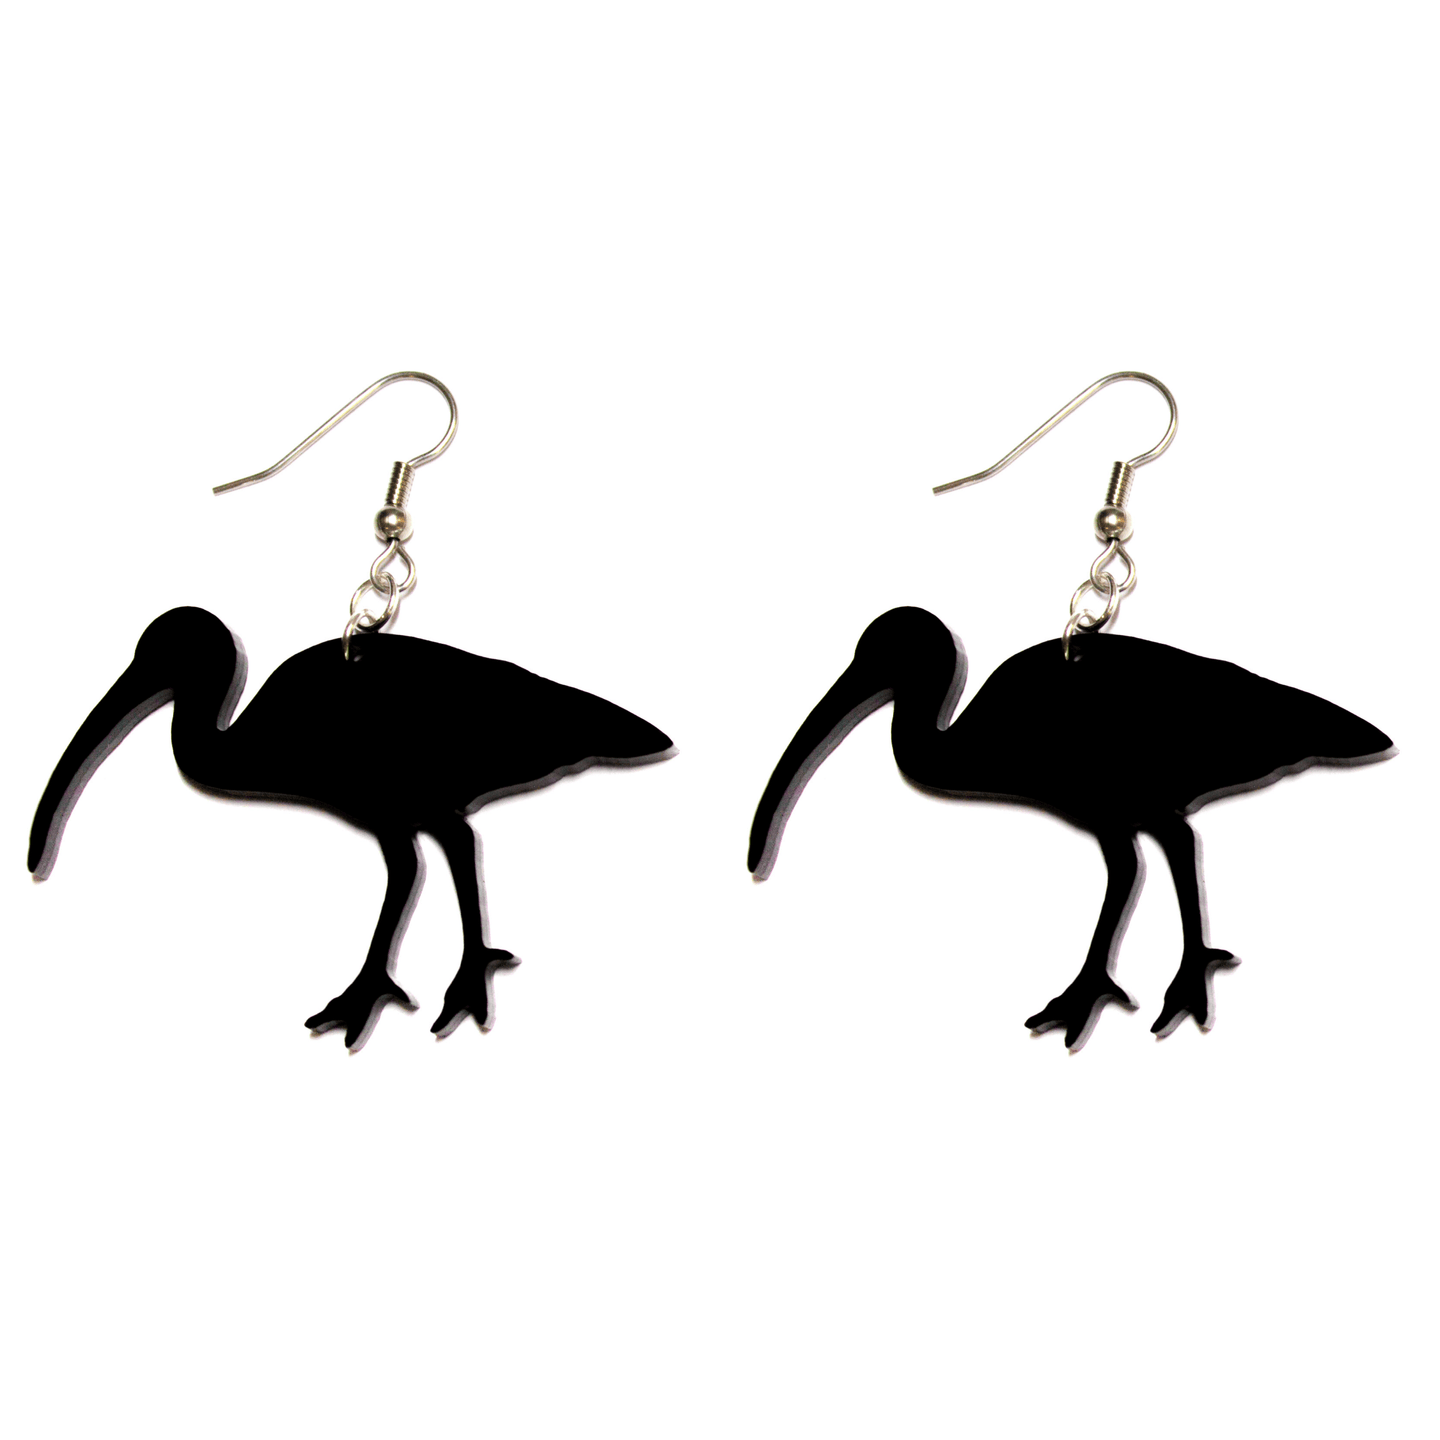 Hand Made Black Bin Chicken Ibis Earrings Acrylic - Sparrow & The Bear